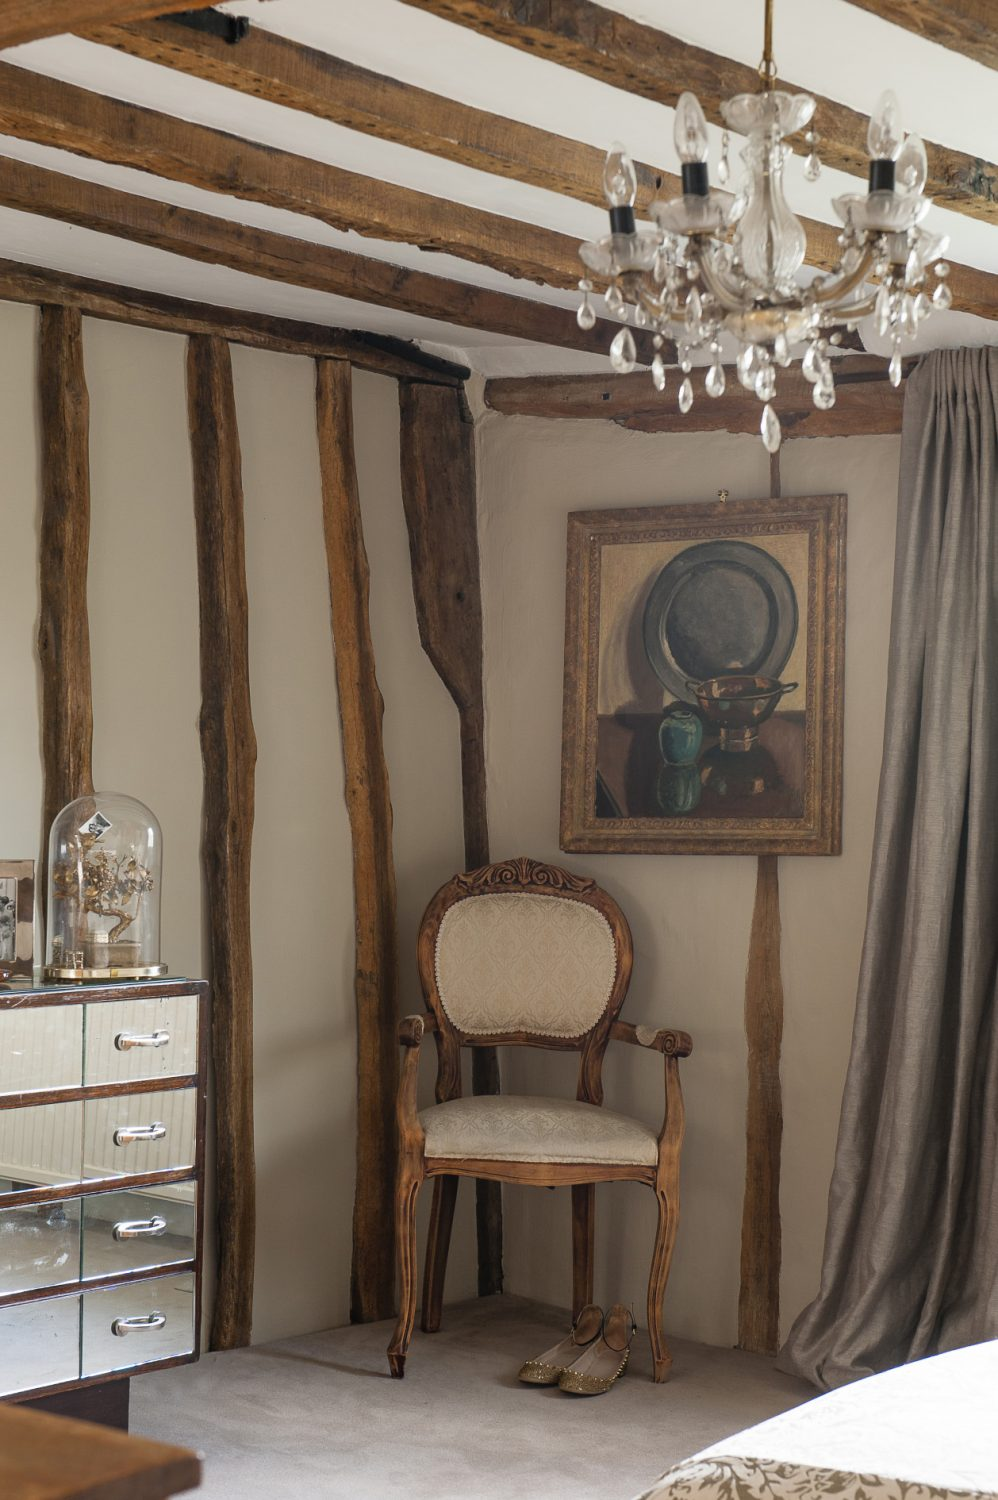 Adjacent to a stunning 1920s mirrored chest of drawers, a still life hangs above a gilded chair in one co